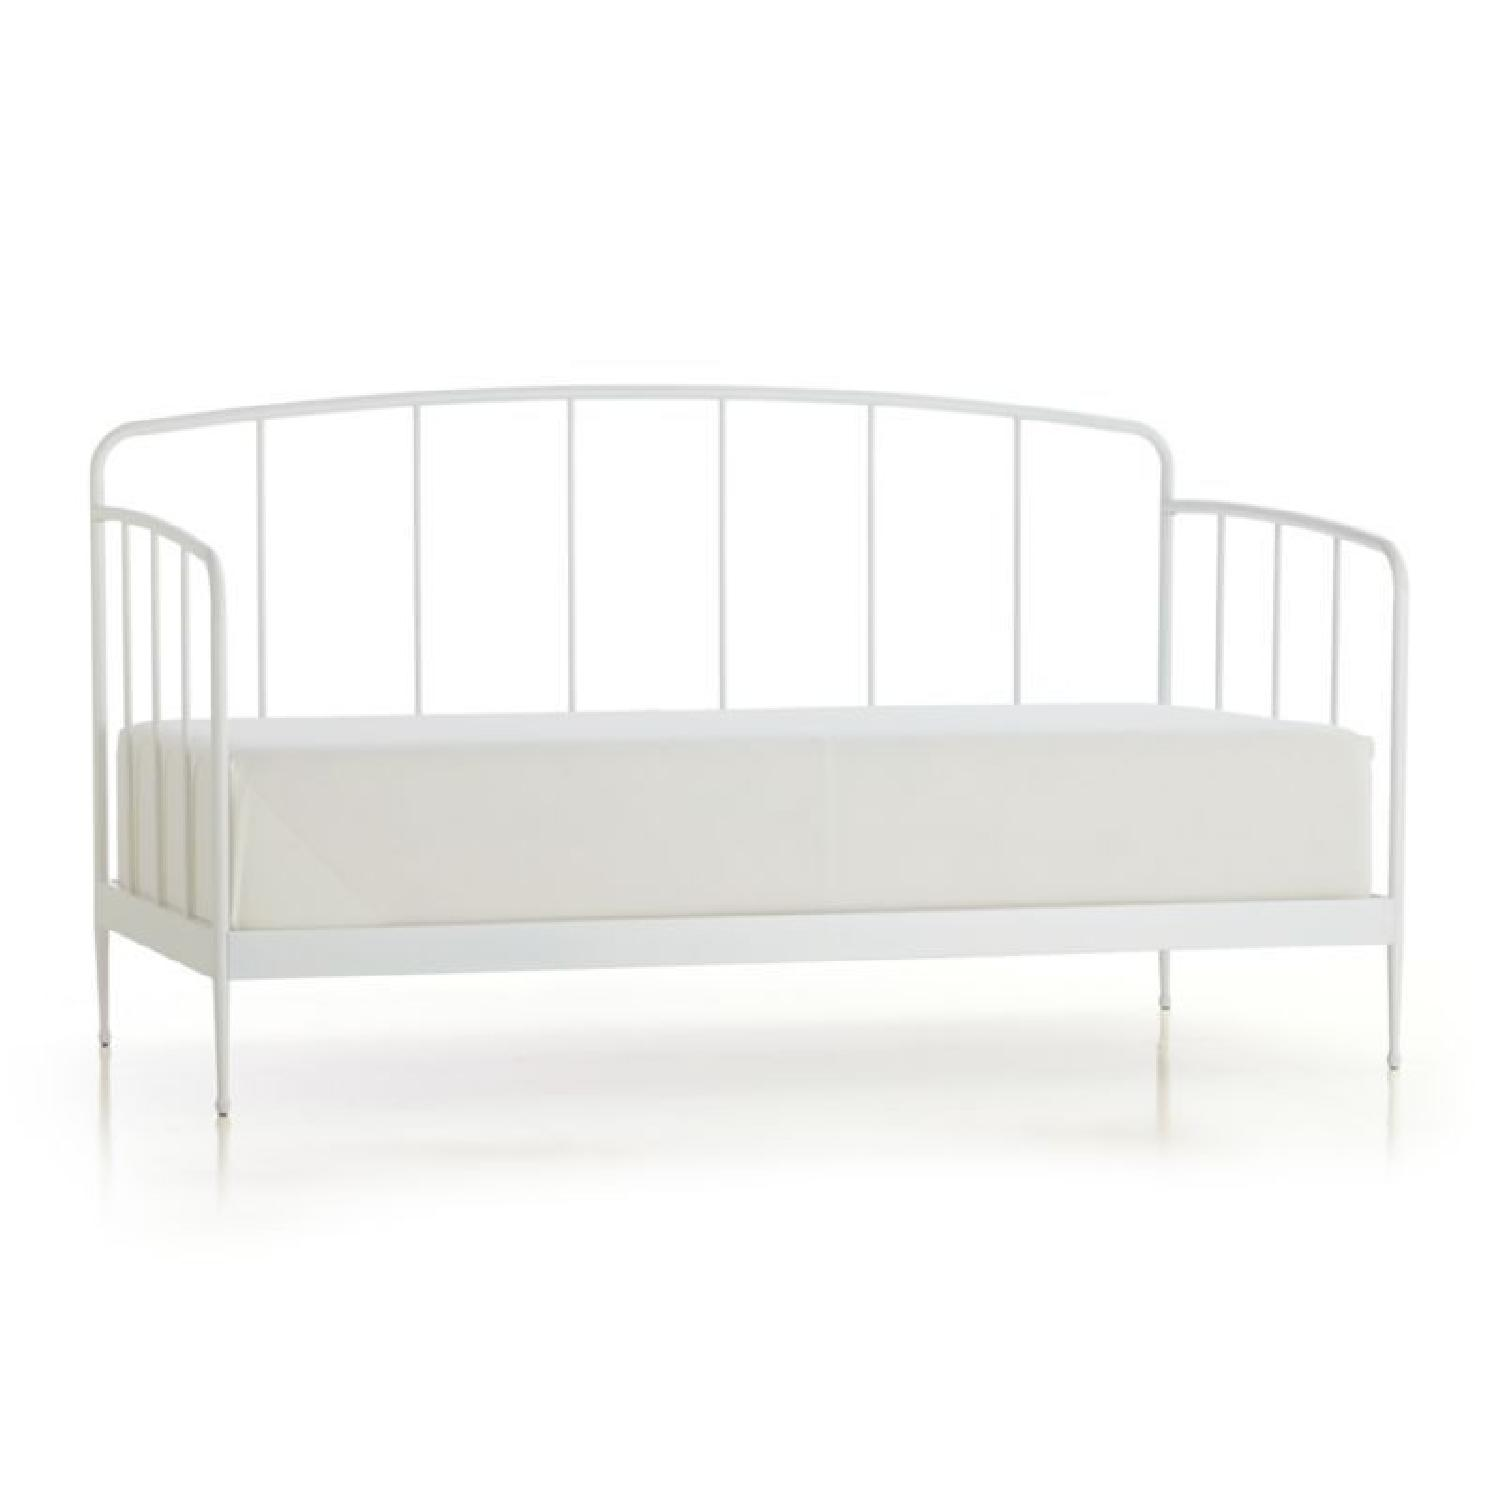 Crate & Barrel White Metal Twin Size Daybed